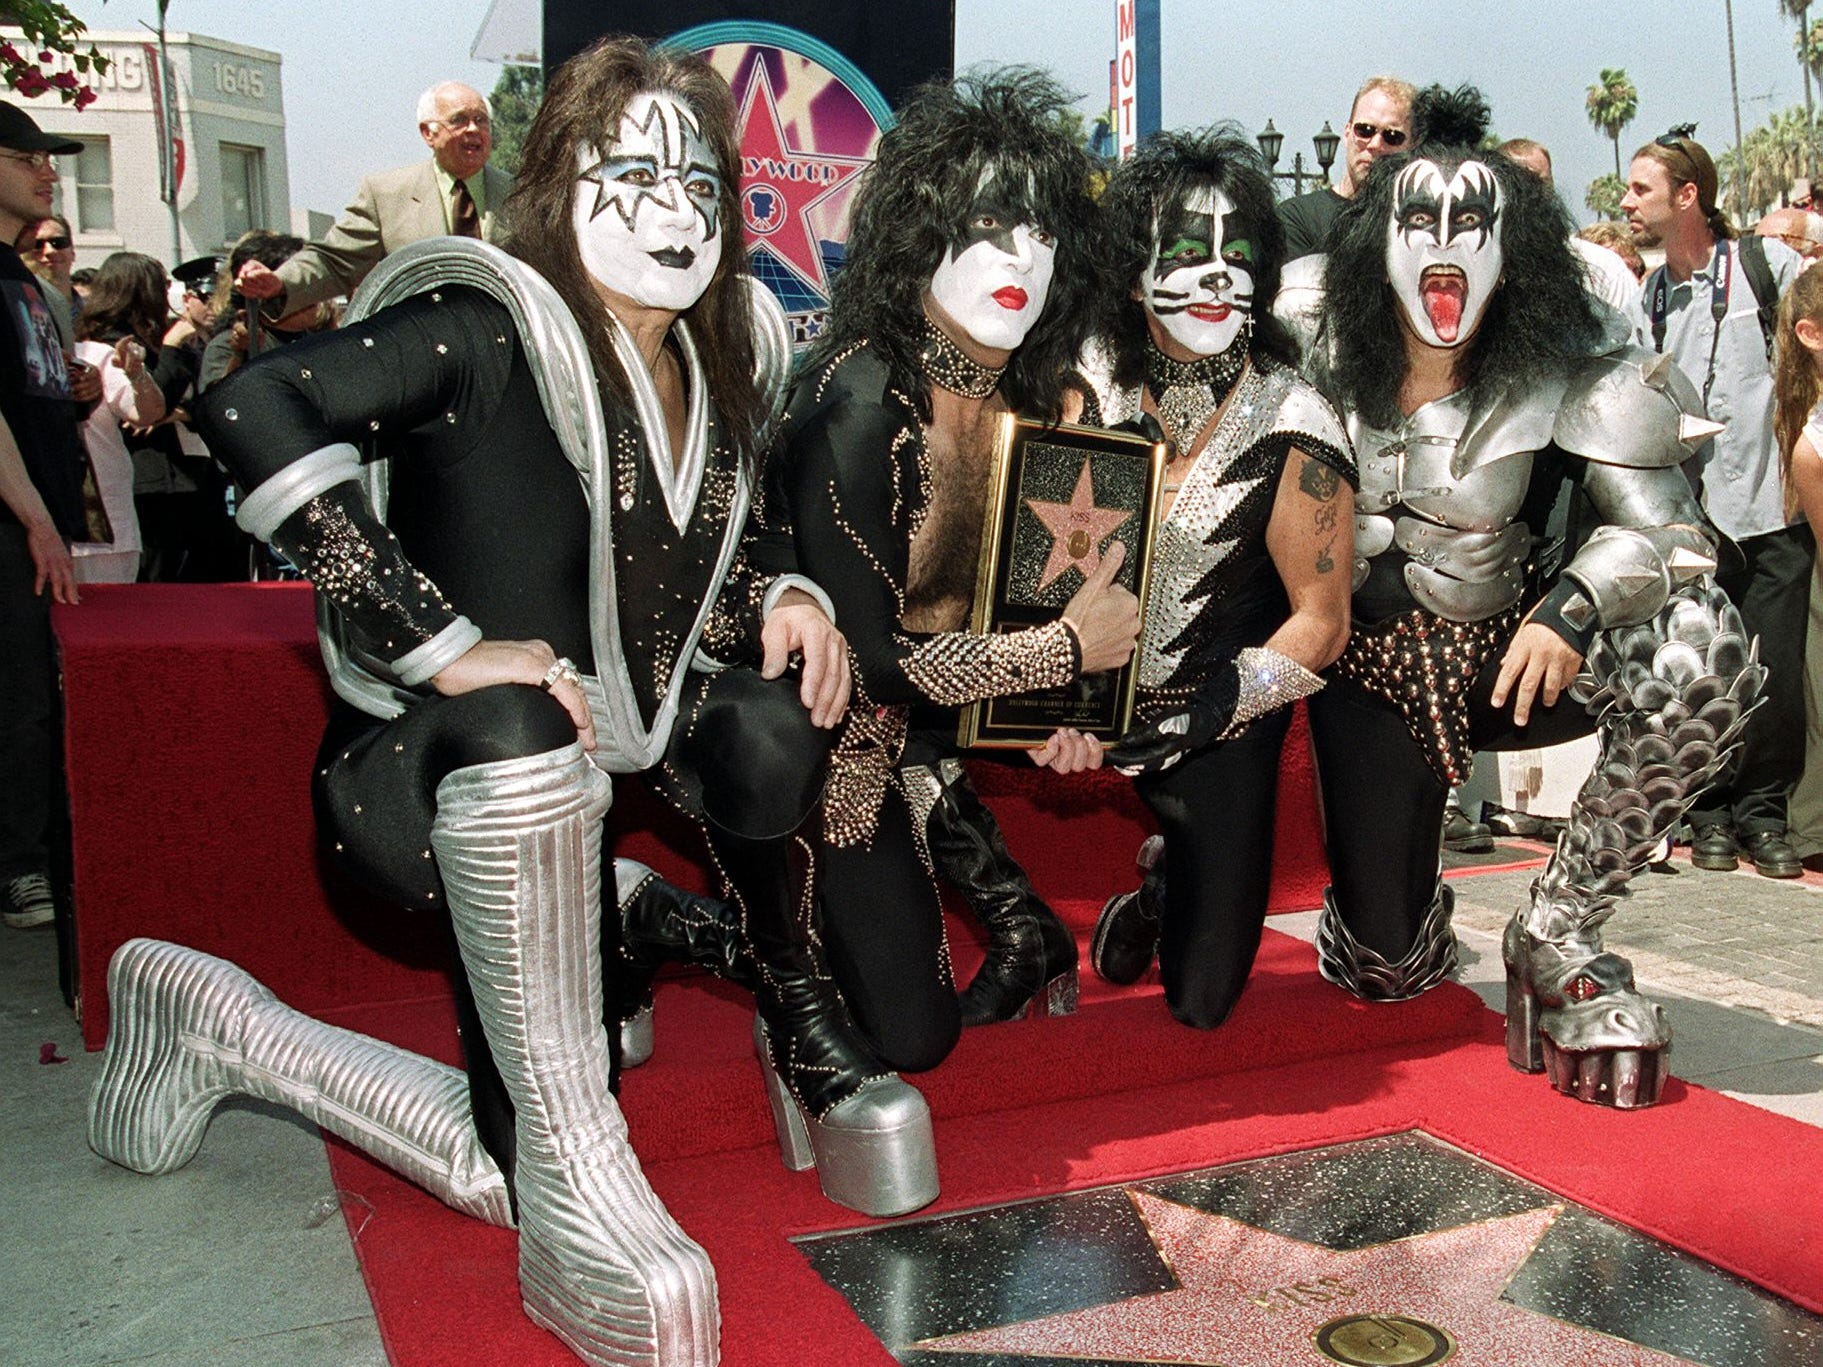 HOLLYWOOD:  Members of the rock band Kiss (from left to right): Ace Frehley, Paul Stanley, Peter Criss and Gene Simmons pose by the star they received during a Hollywood Walk of Fame ceremony on Aug. 11, 1999 in Hollywood, Ca.  The group, known for their theatrical stage performances, has sold 80 million records over their 26 year career. AFP PHOTO/Vince BUCCI